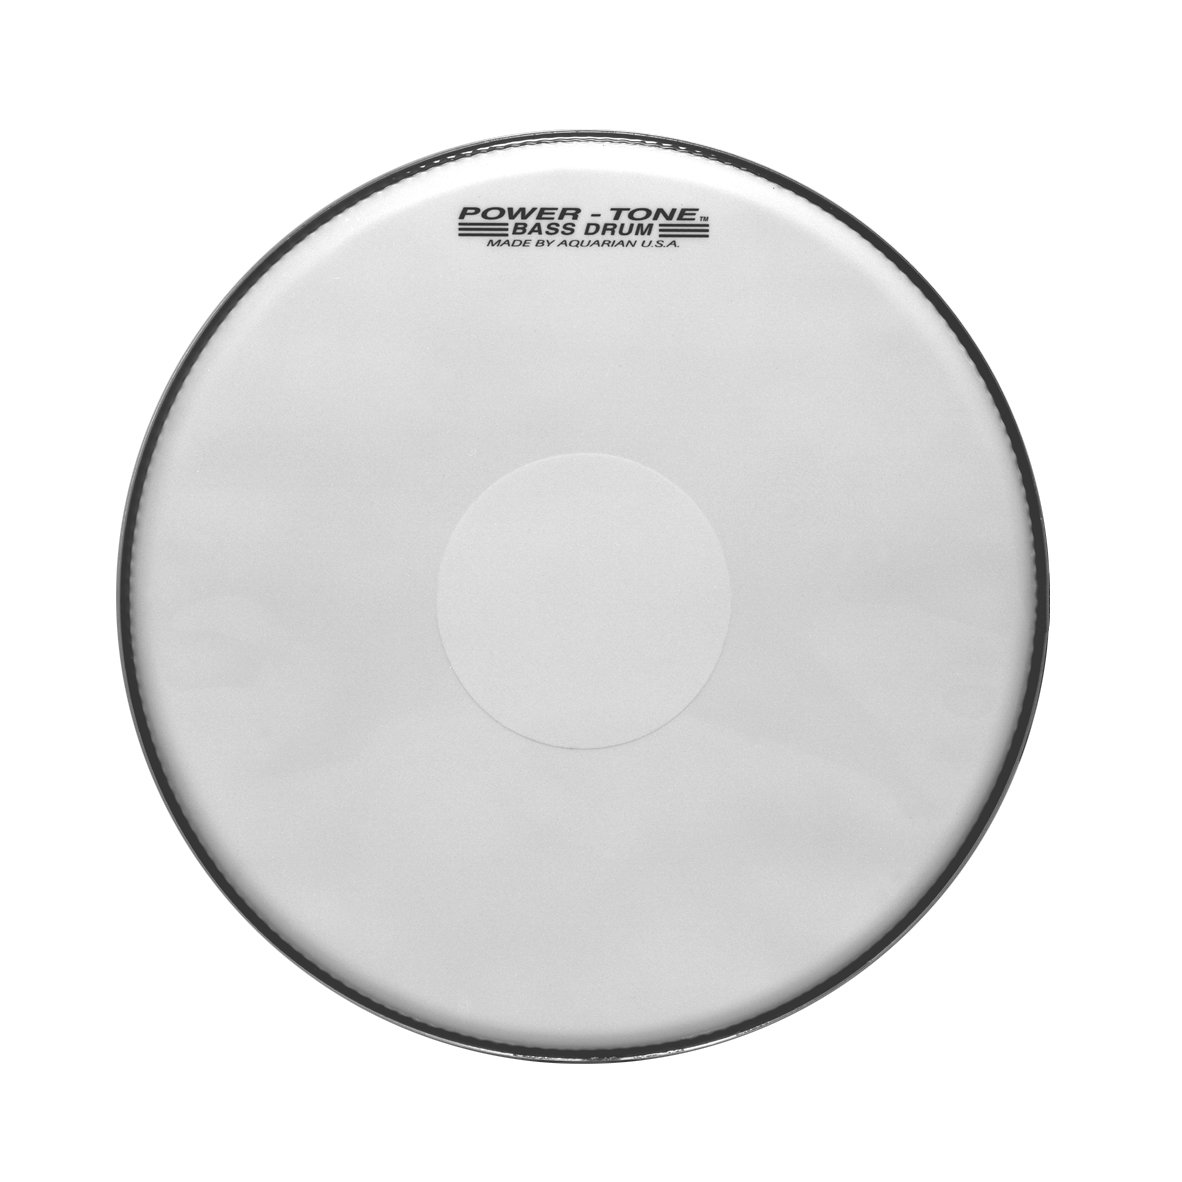 Powertone Marching Bass Drum Heads 18 inch